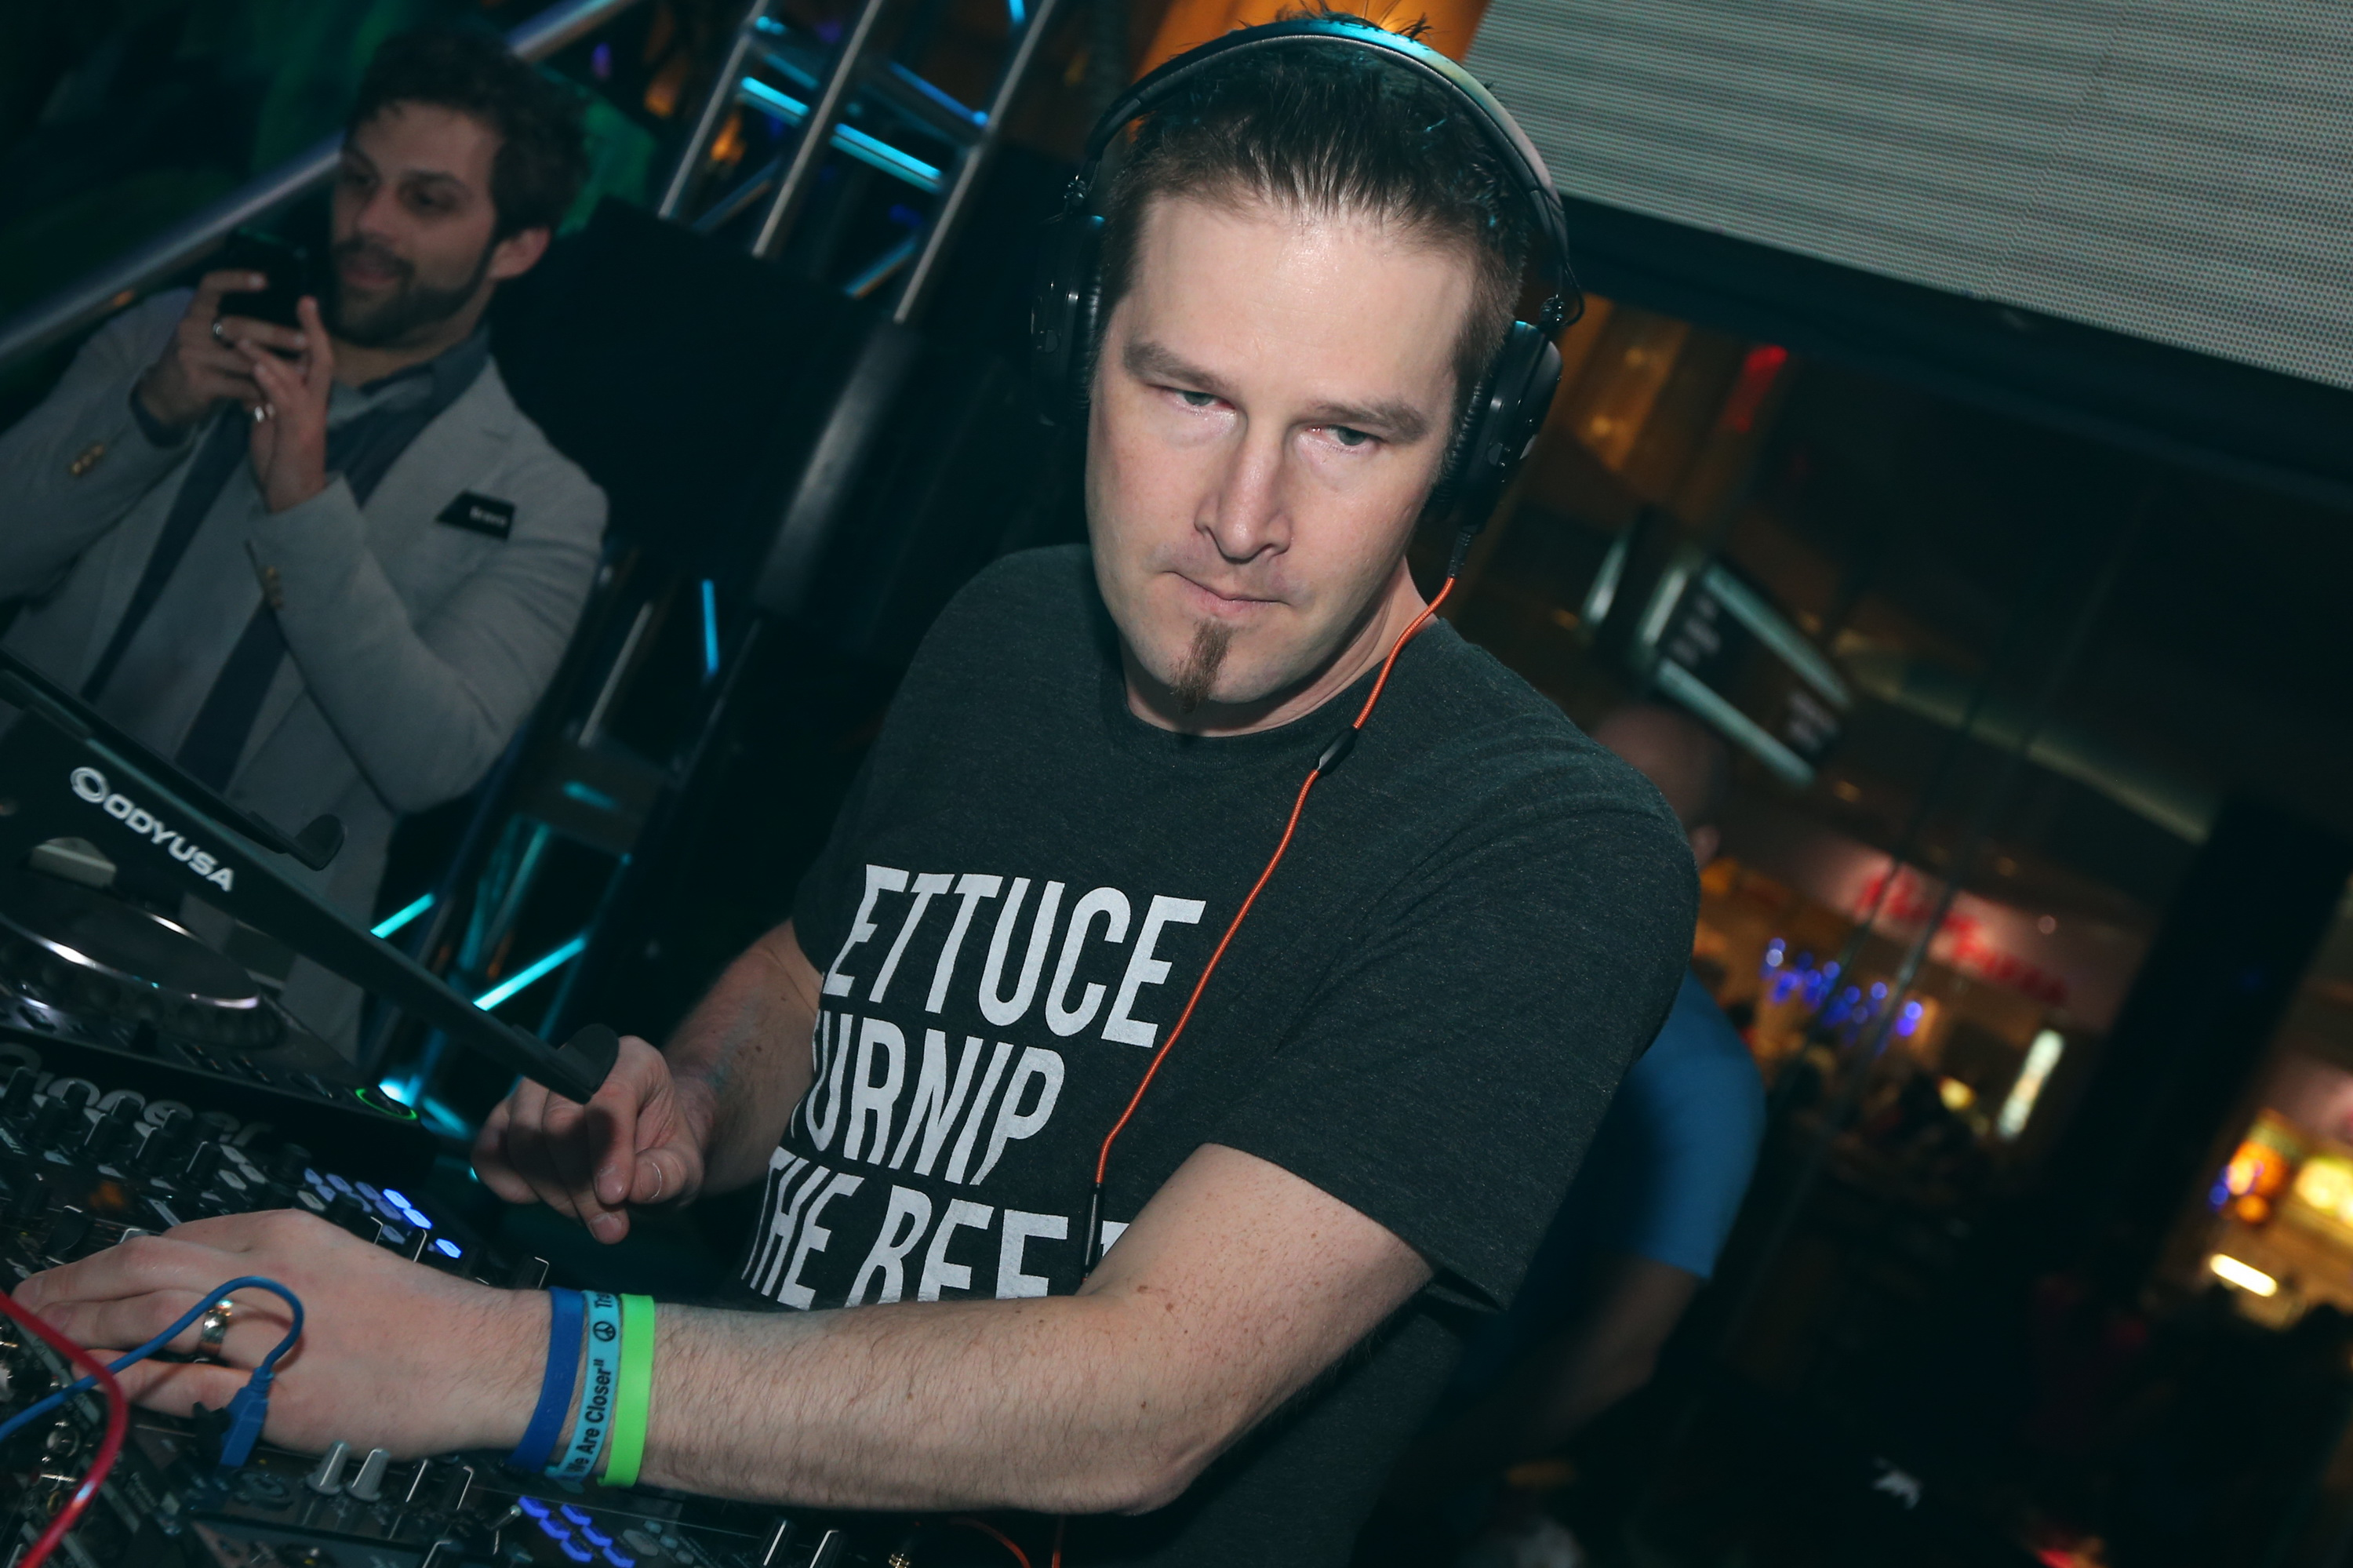 Sandstorm DJ Darude has chosen his Eurovision song to represent Finland so get ready to rave